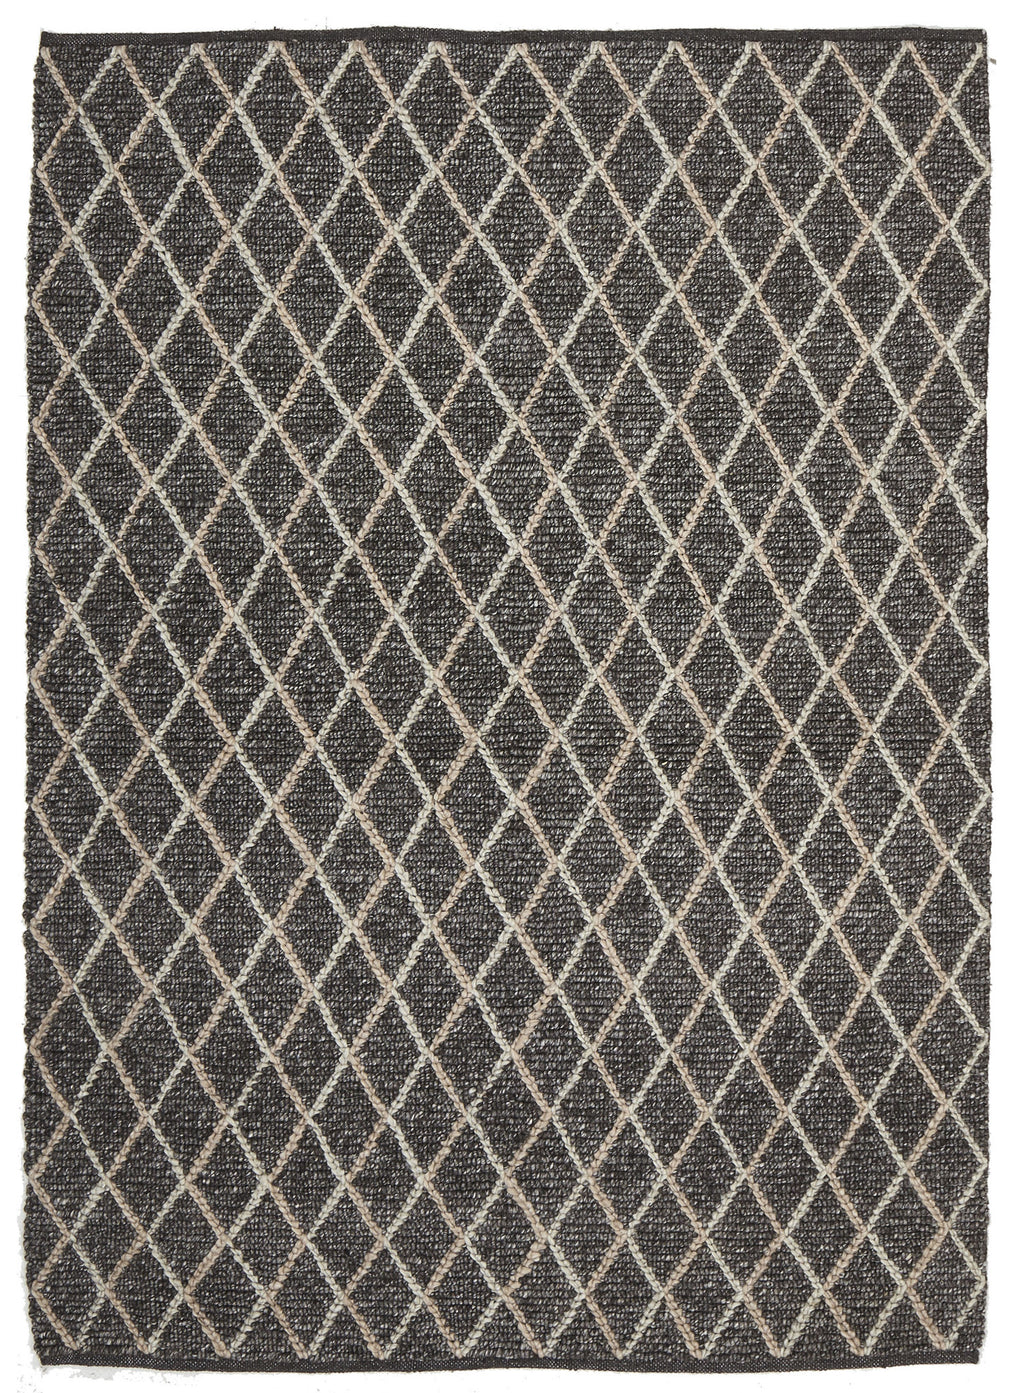 Ida Luxury Madras Felted Wool Rug Blue Charcoal